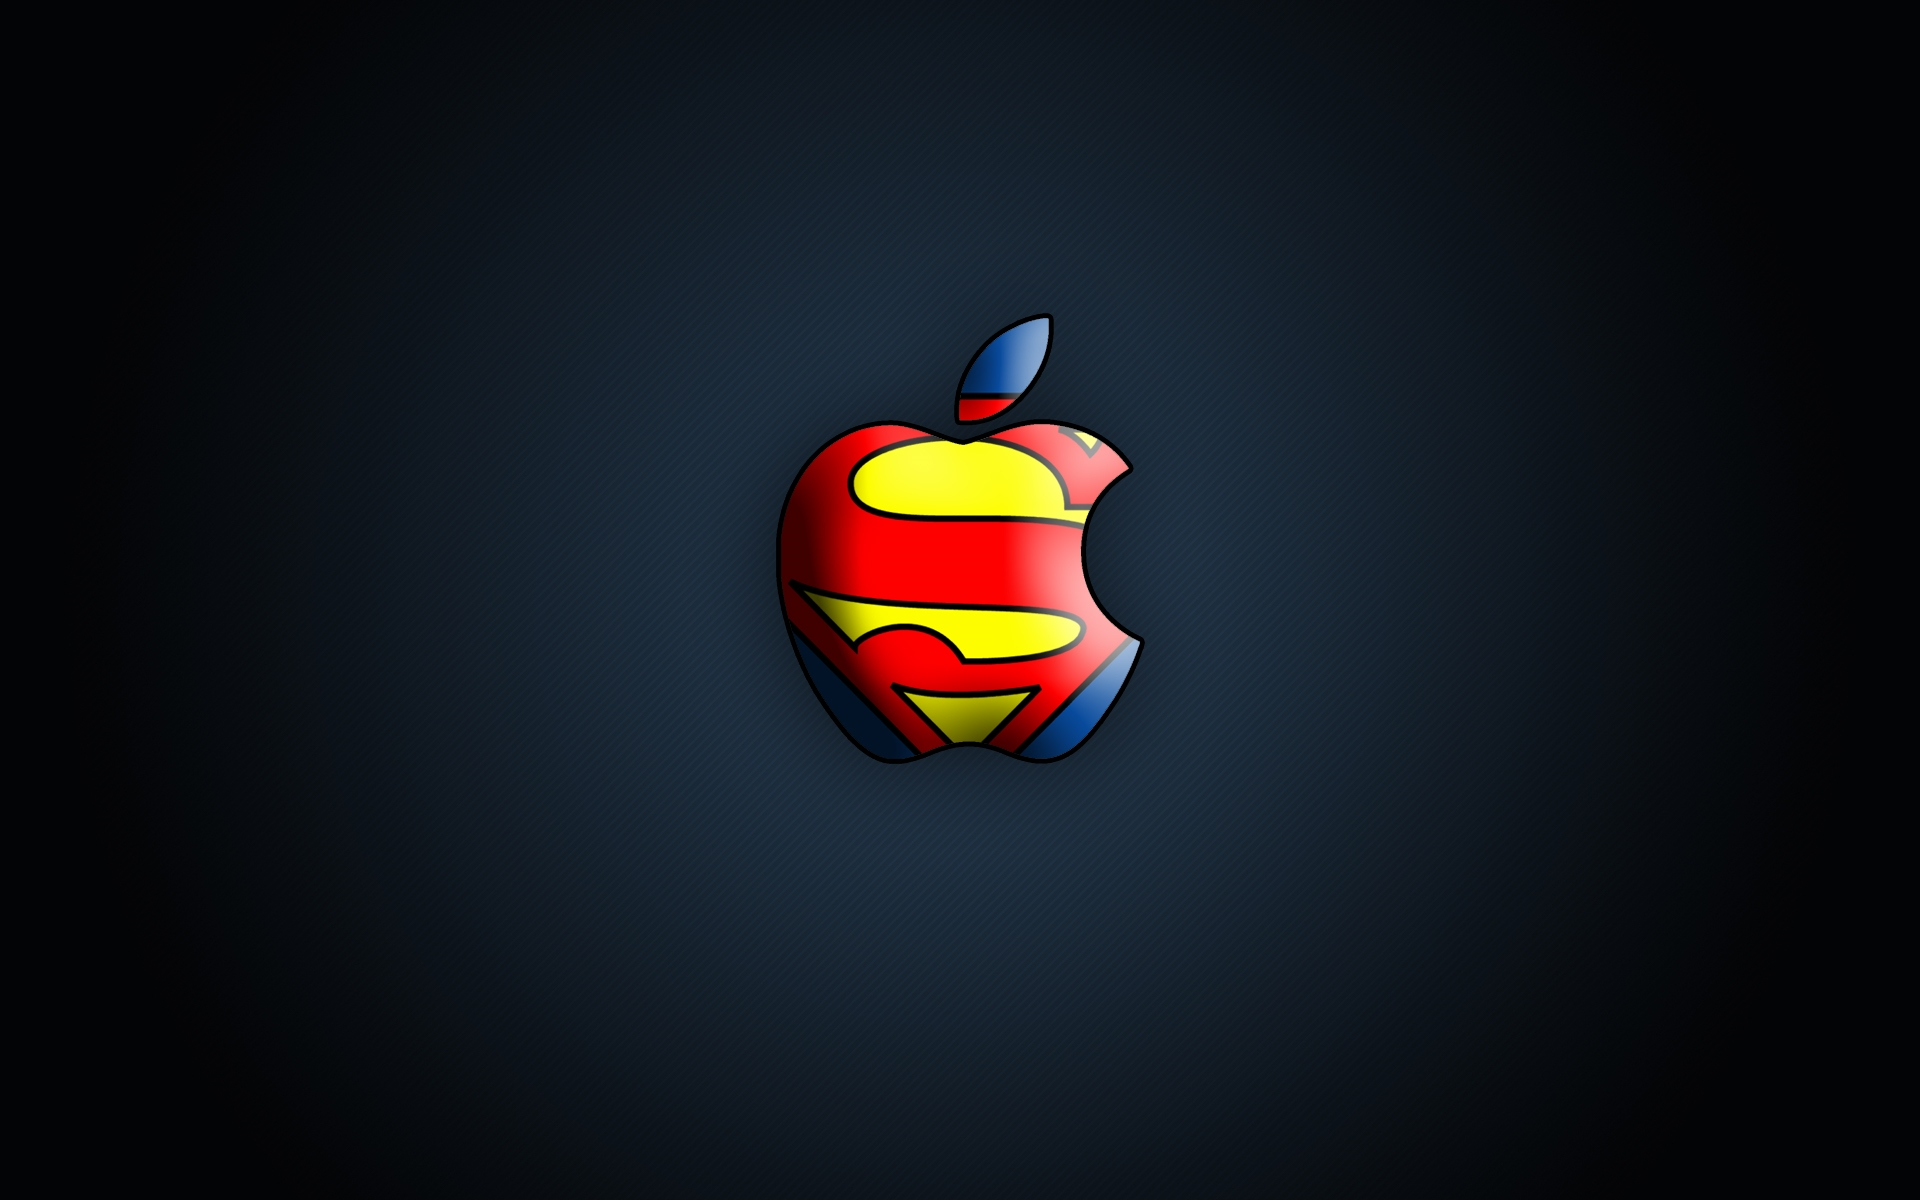 Apple logo wallpapers hd a26 hd desktop wallpapers 4k hd for Wallpapers animados hd